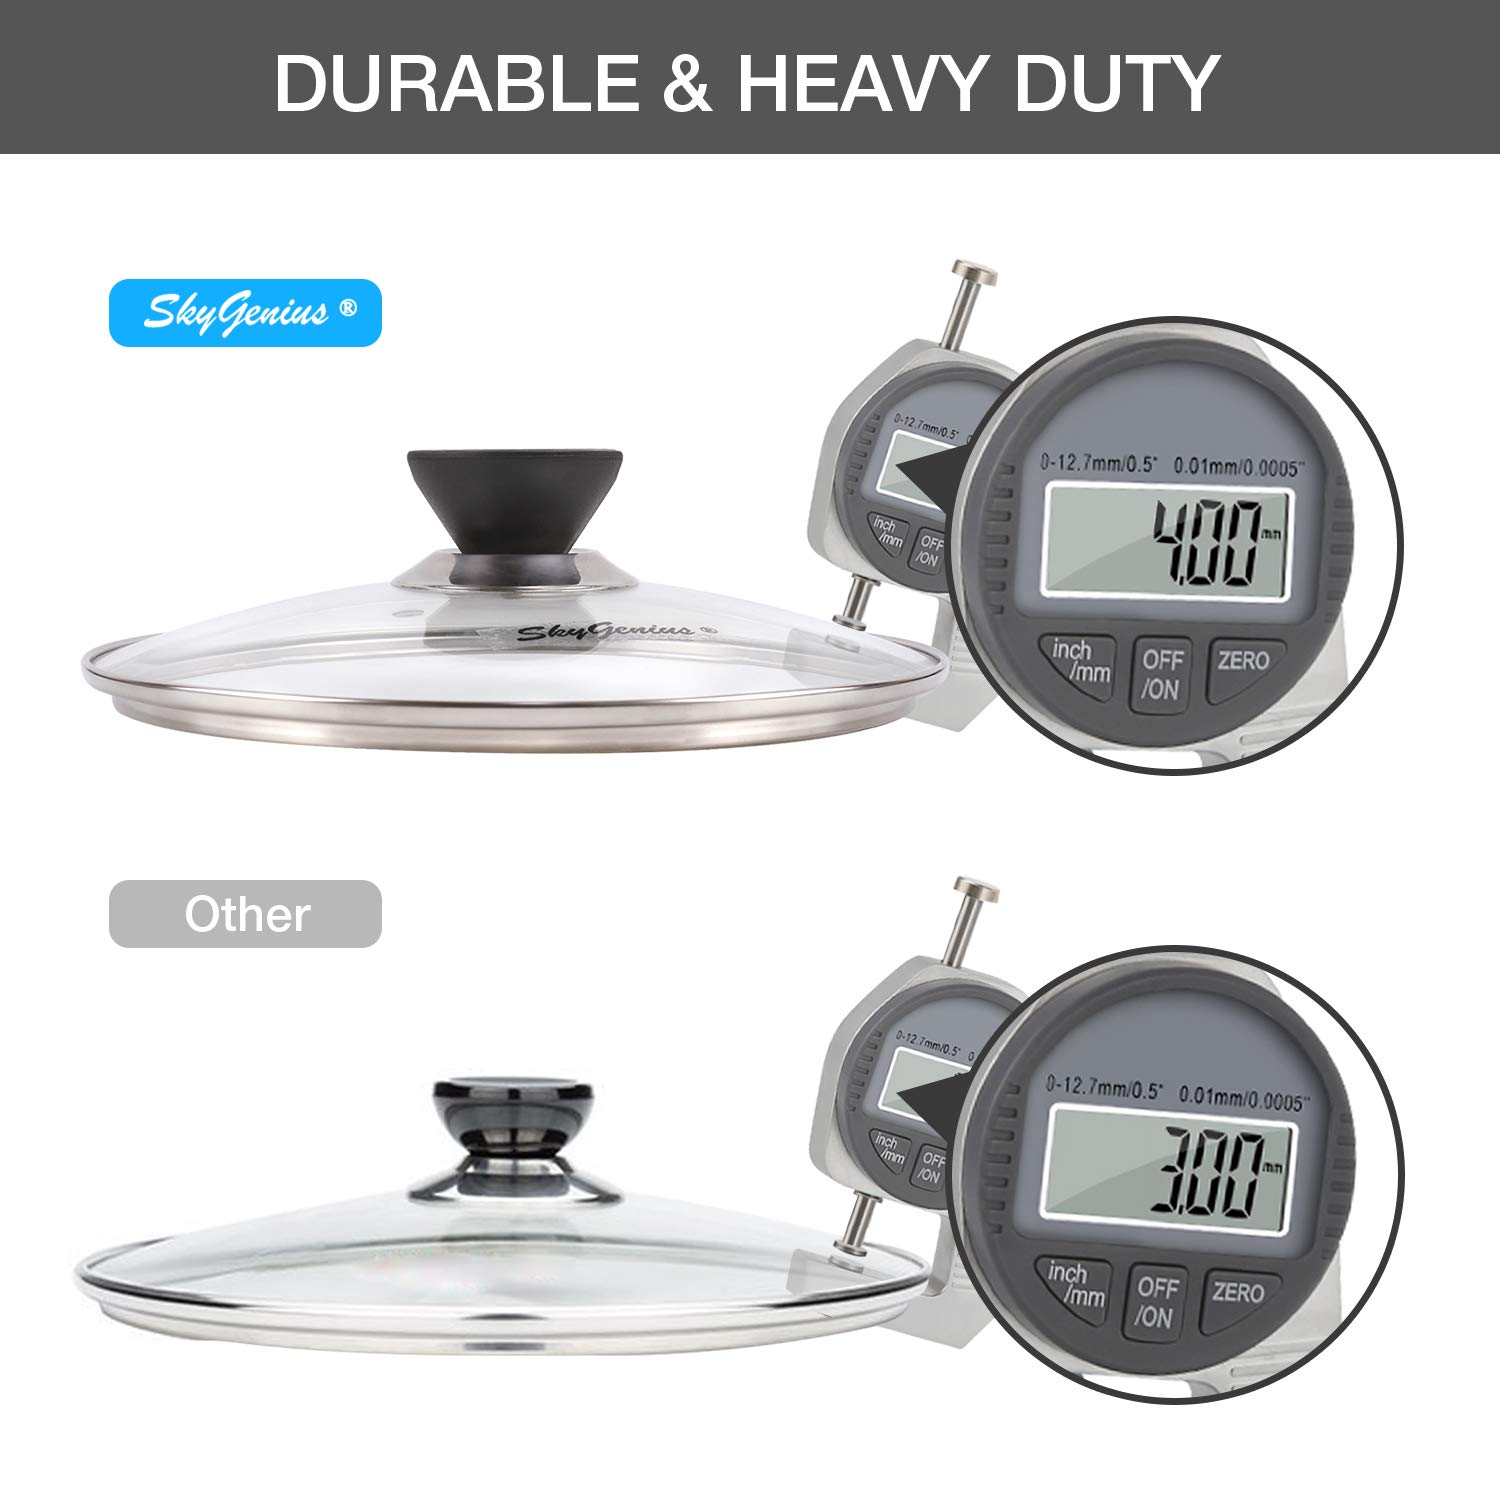 9 inch Tempered Glass Lid for Instant Pot 6 Quart Universal Pan or Pot Cover W//Spoon Holder